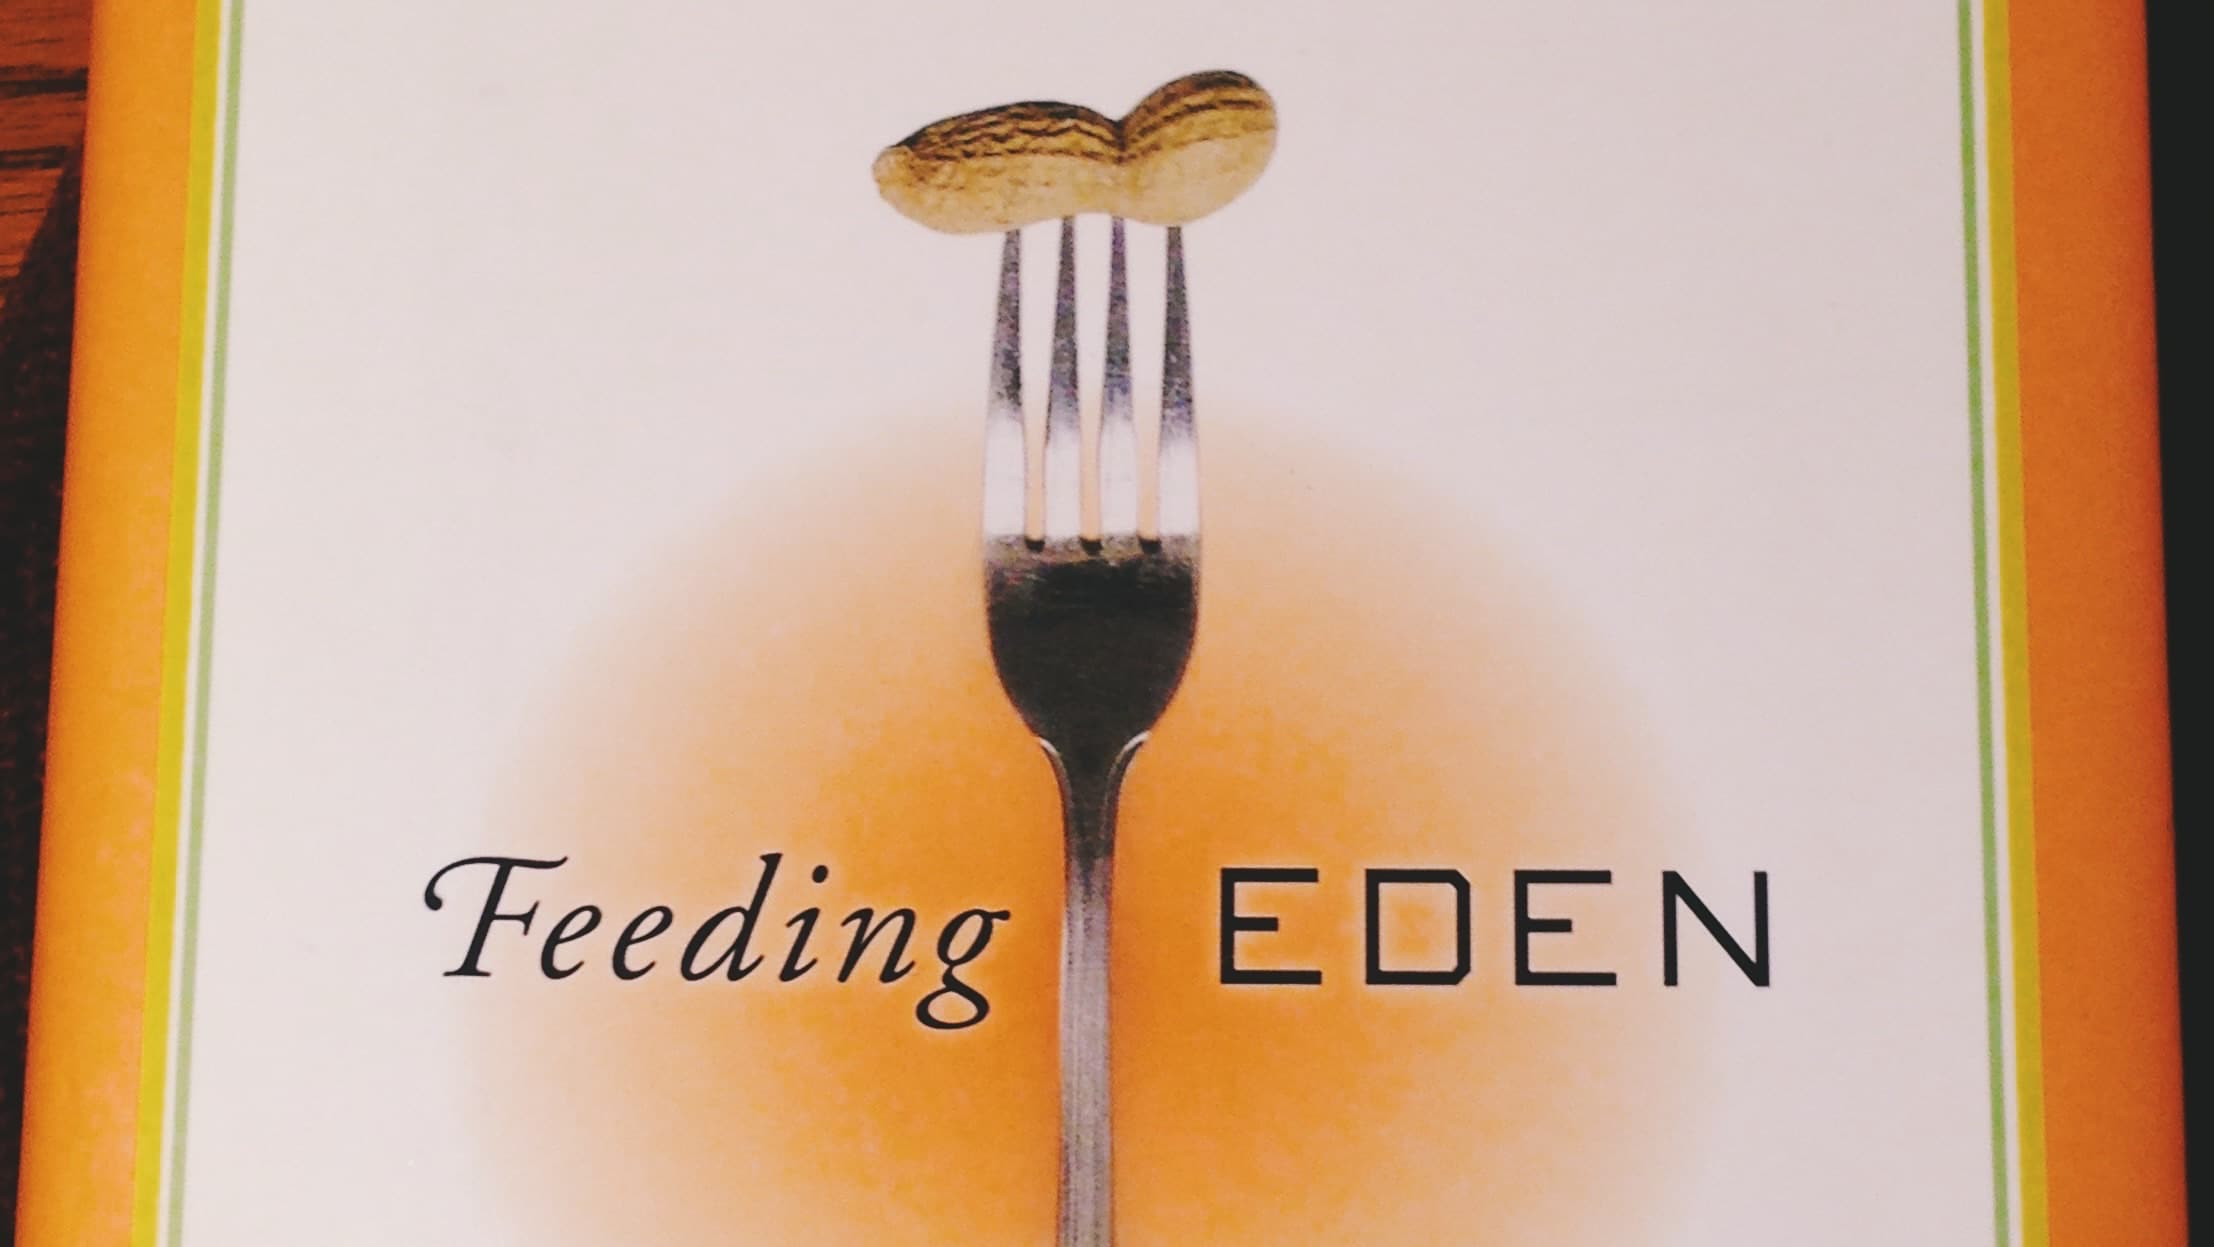 Feeding EDEN by Susan Weissman